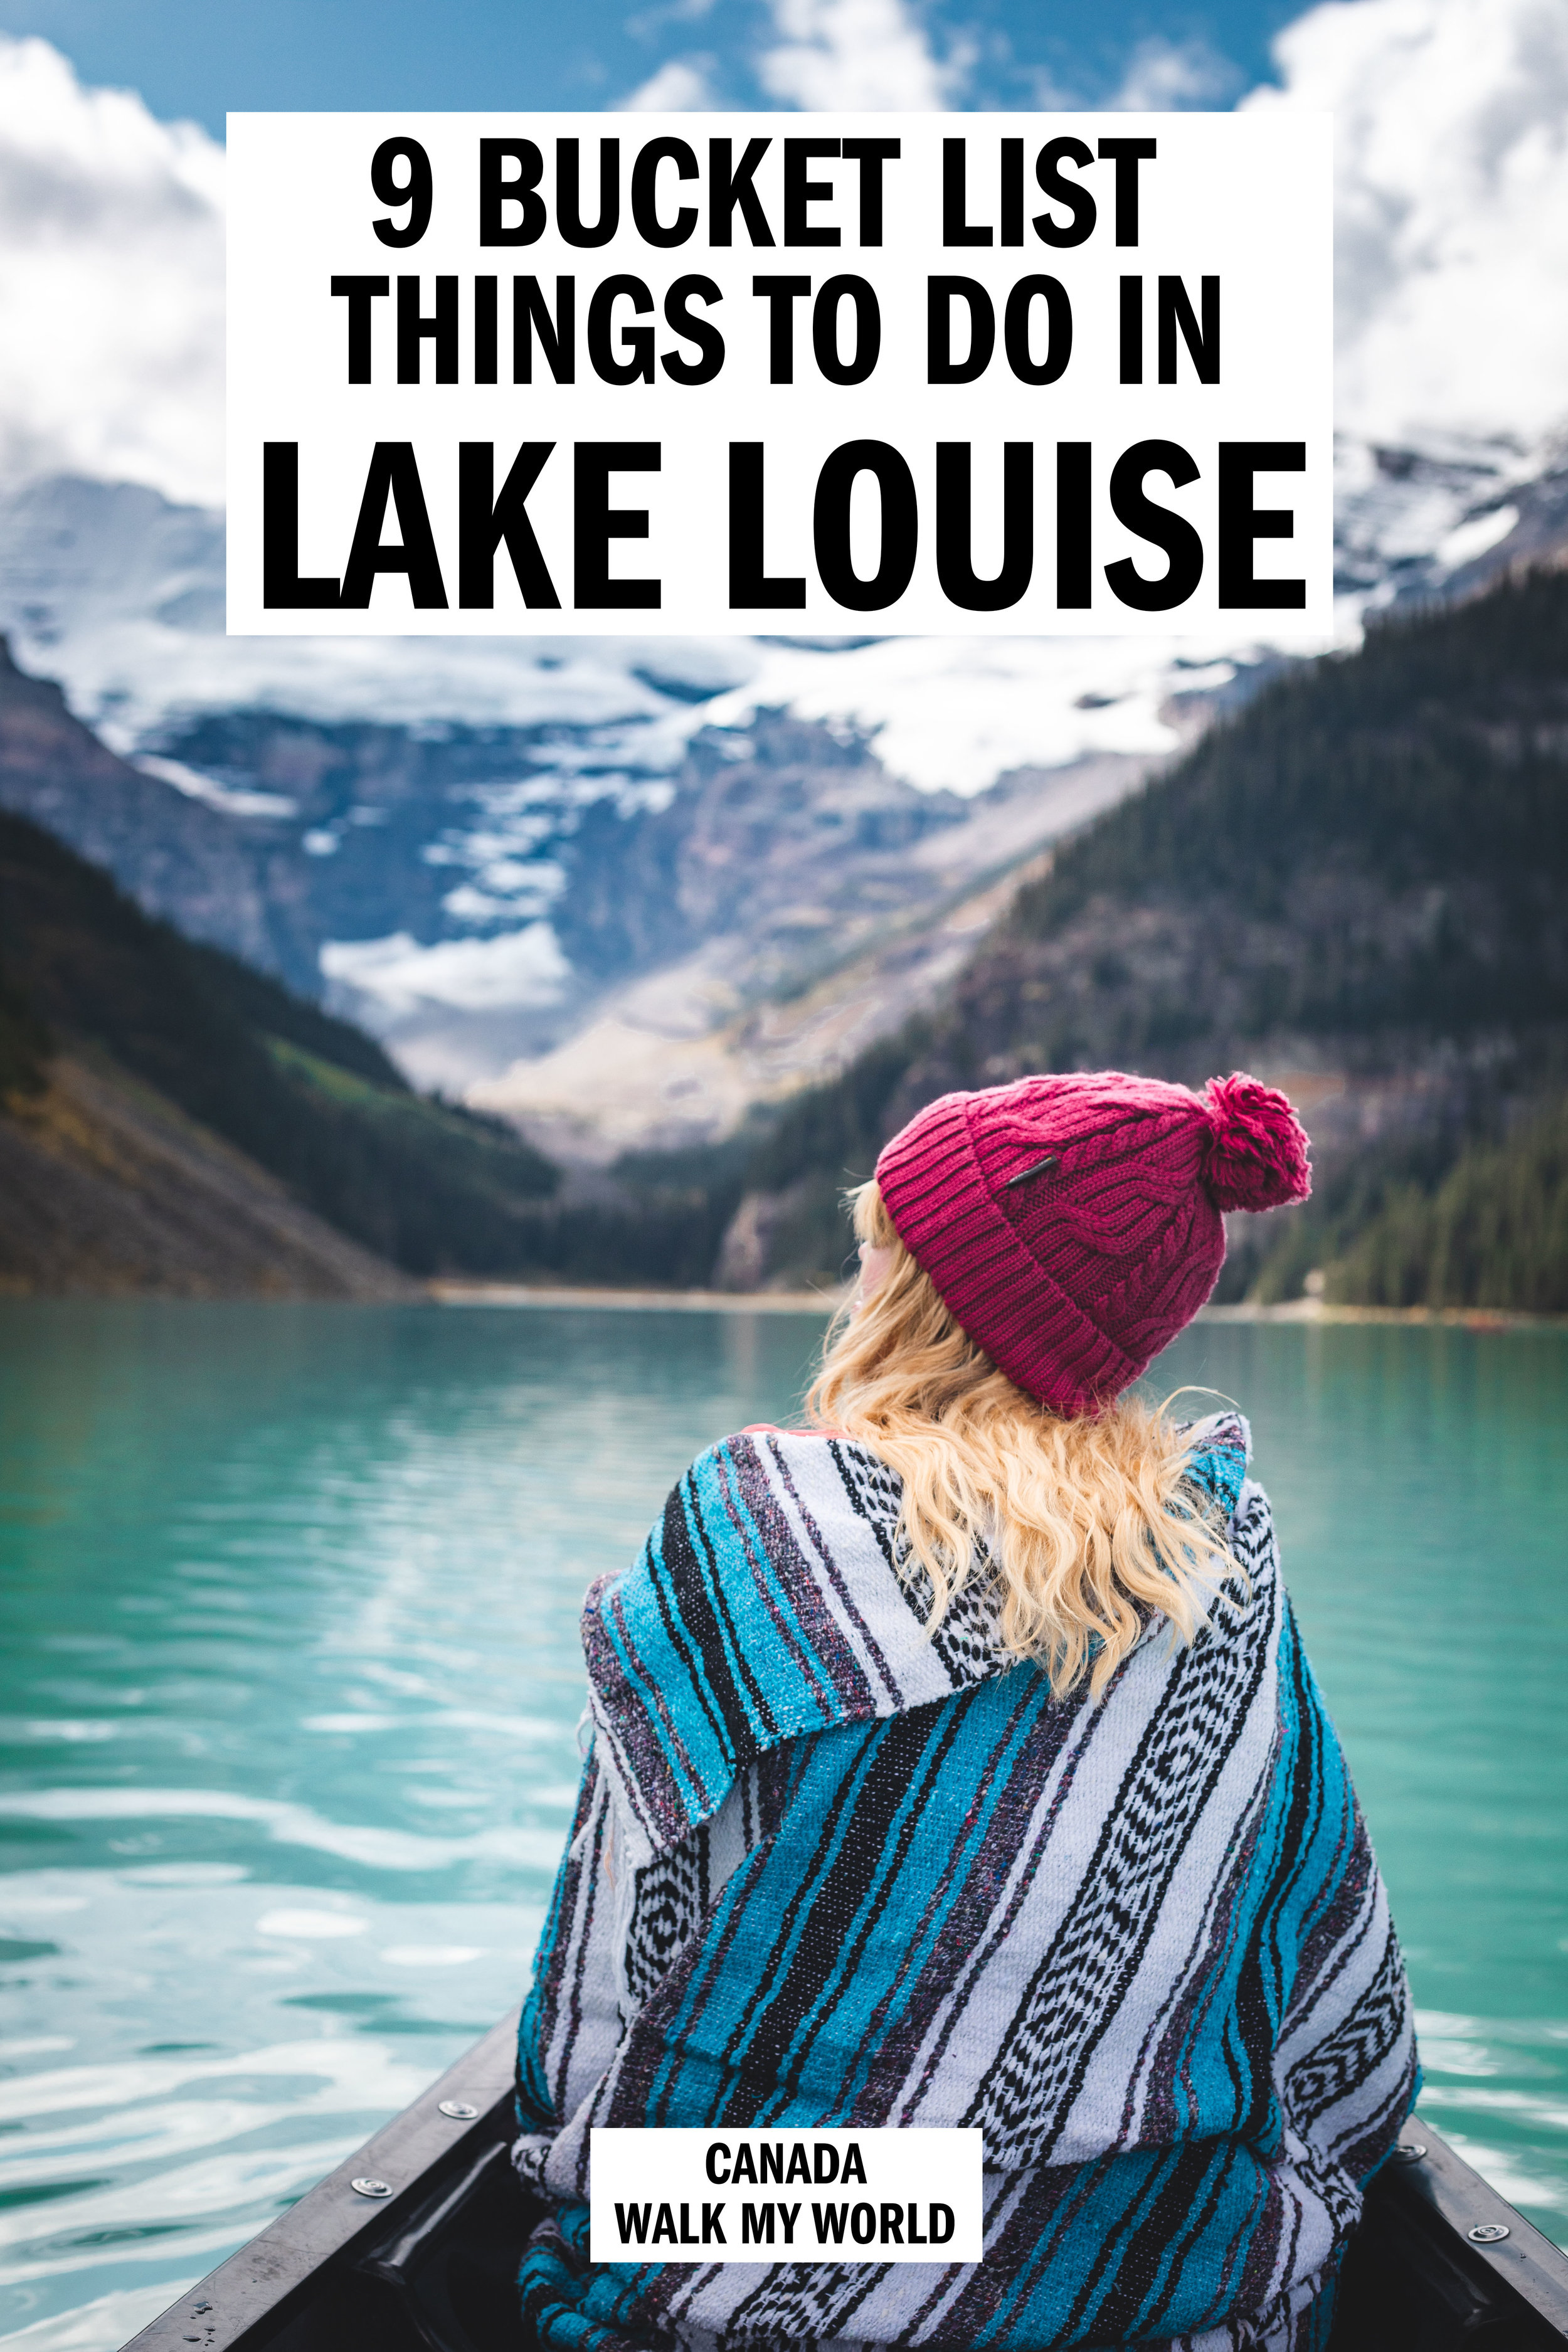 9 bucket list worthy things to do in Lake Louise. Our guide to having an unforgettable trip to Lake Louise including some once in a lifetime experiences, some stunning hikes, amazing viewpoints, lunch at a Canadian institution and the best chance to see wild grizzly bears in The Rockies. #LakeLouise #Canada #ThingsToDoInLakeLouise